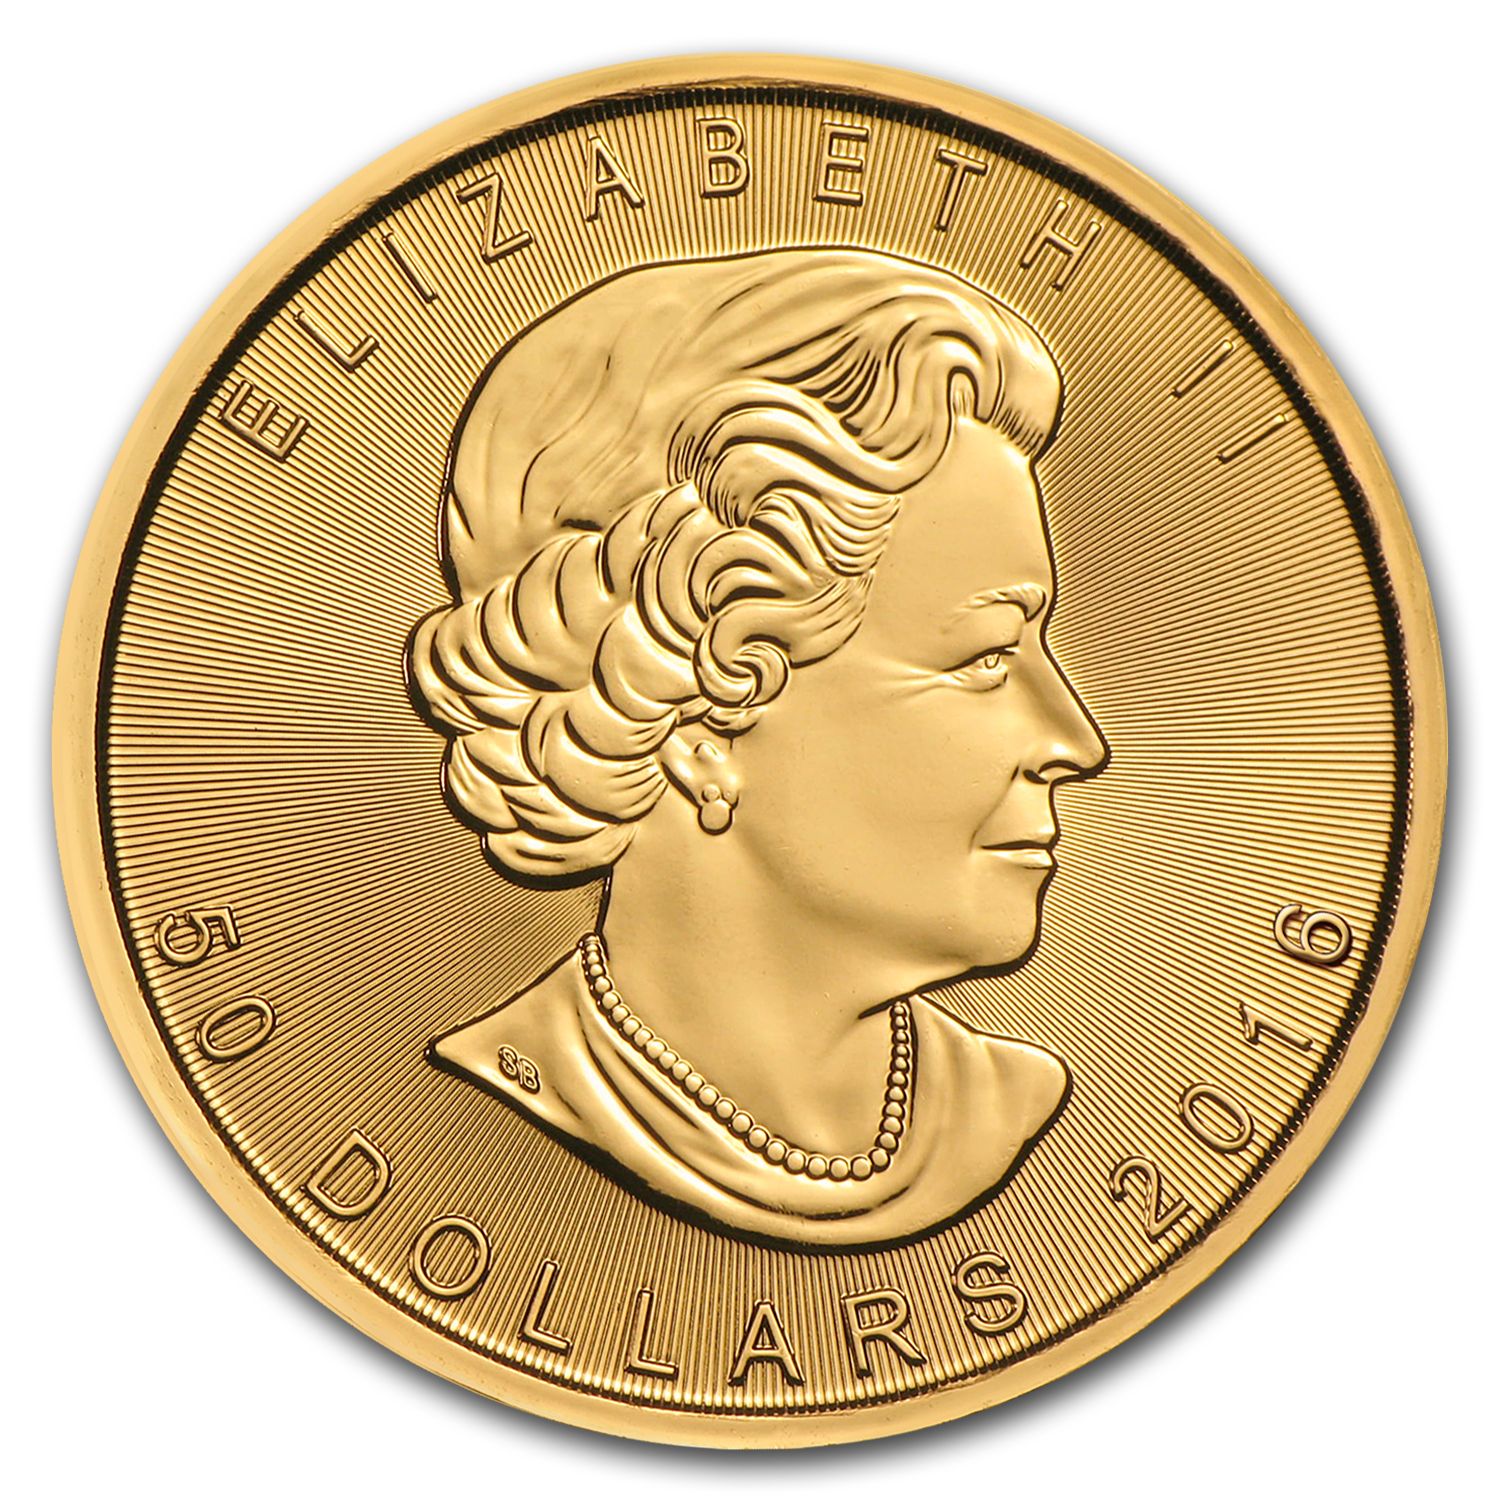 2016 Canada 1 oz Gold Maple Leaf (MintDirect® Single)